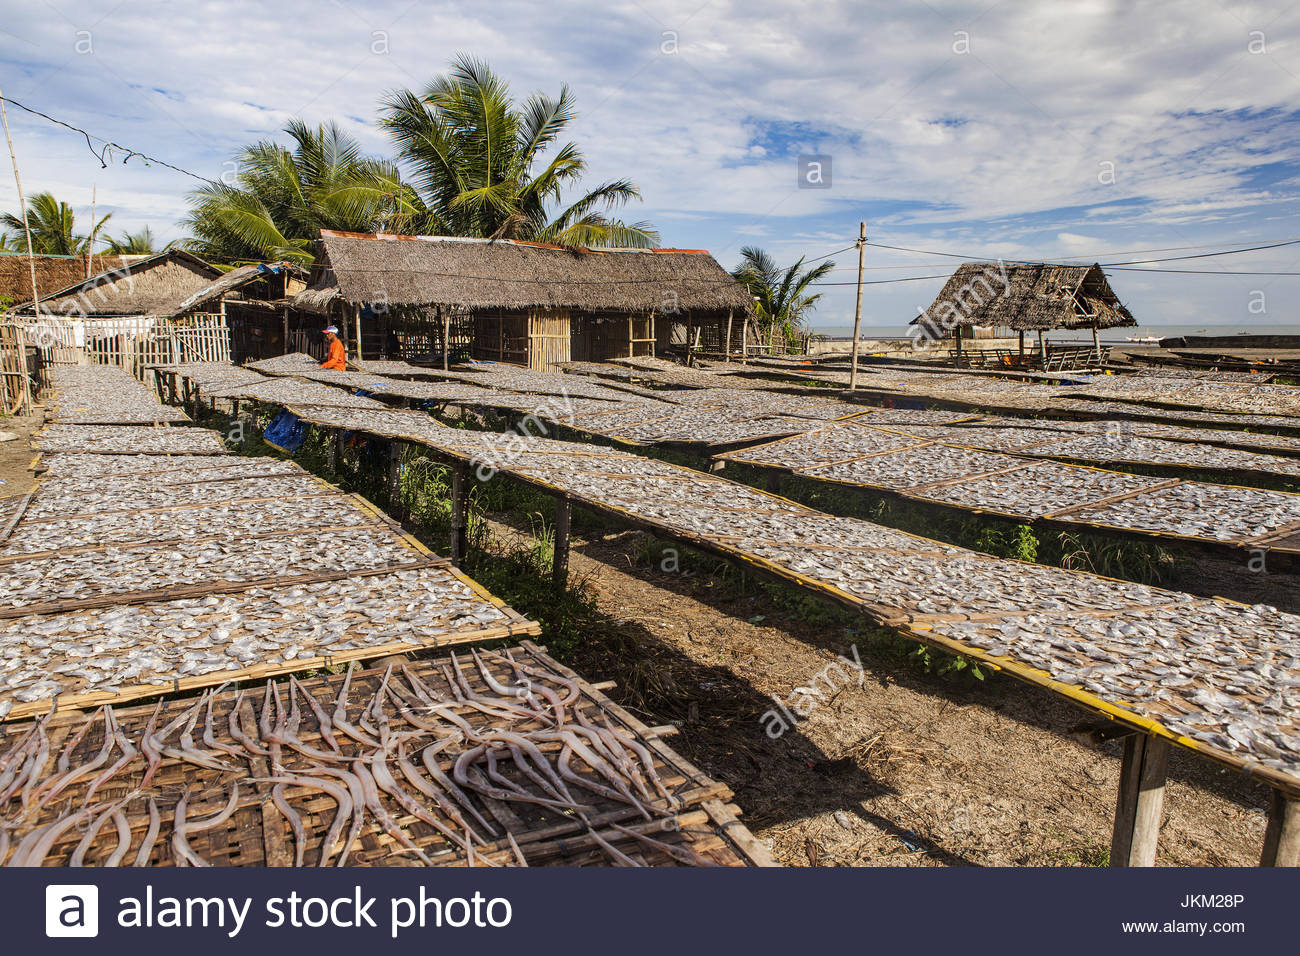 Fish being dried in the sun.